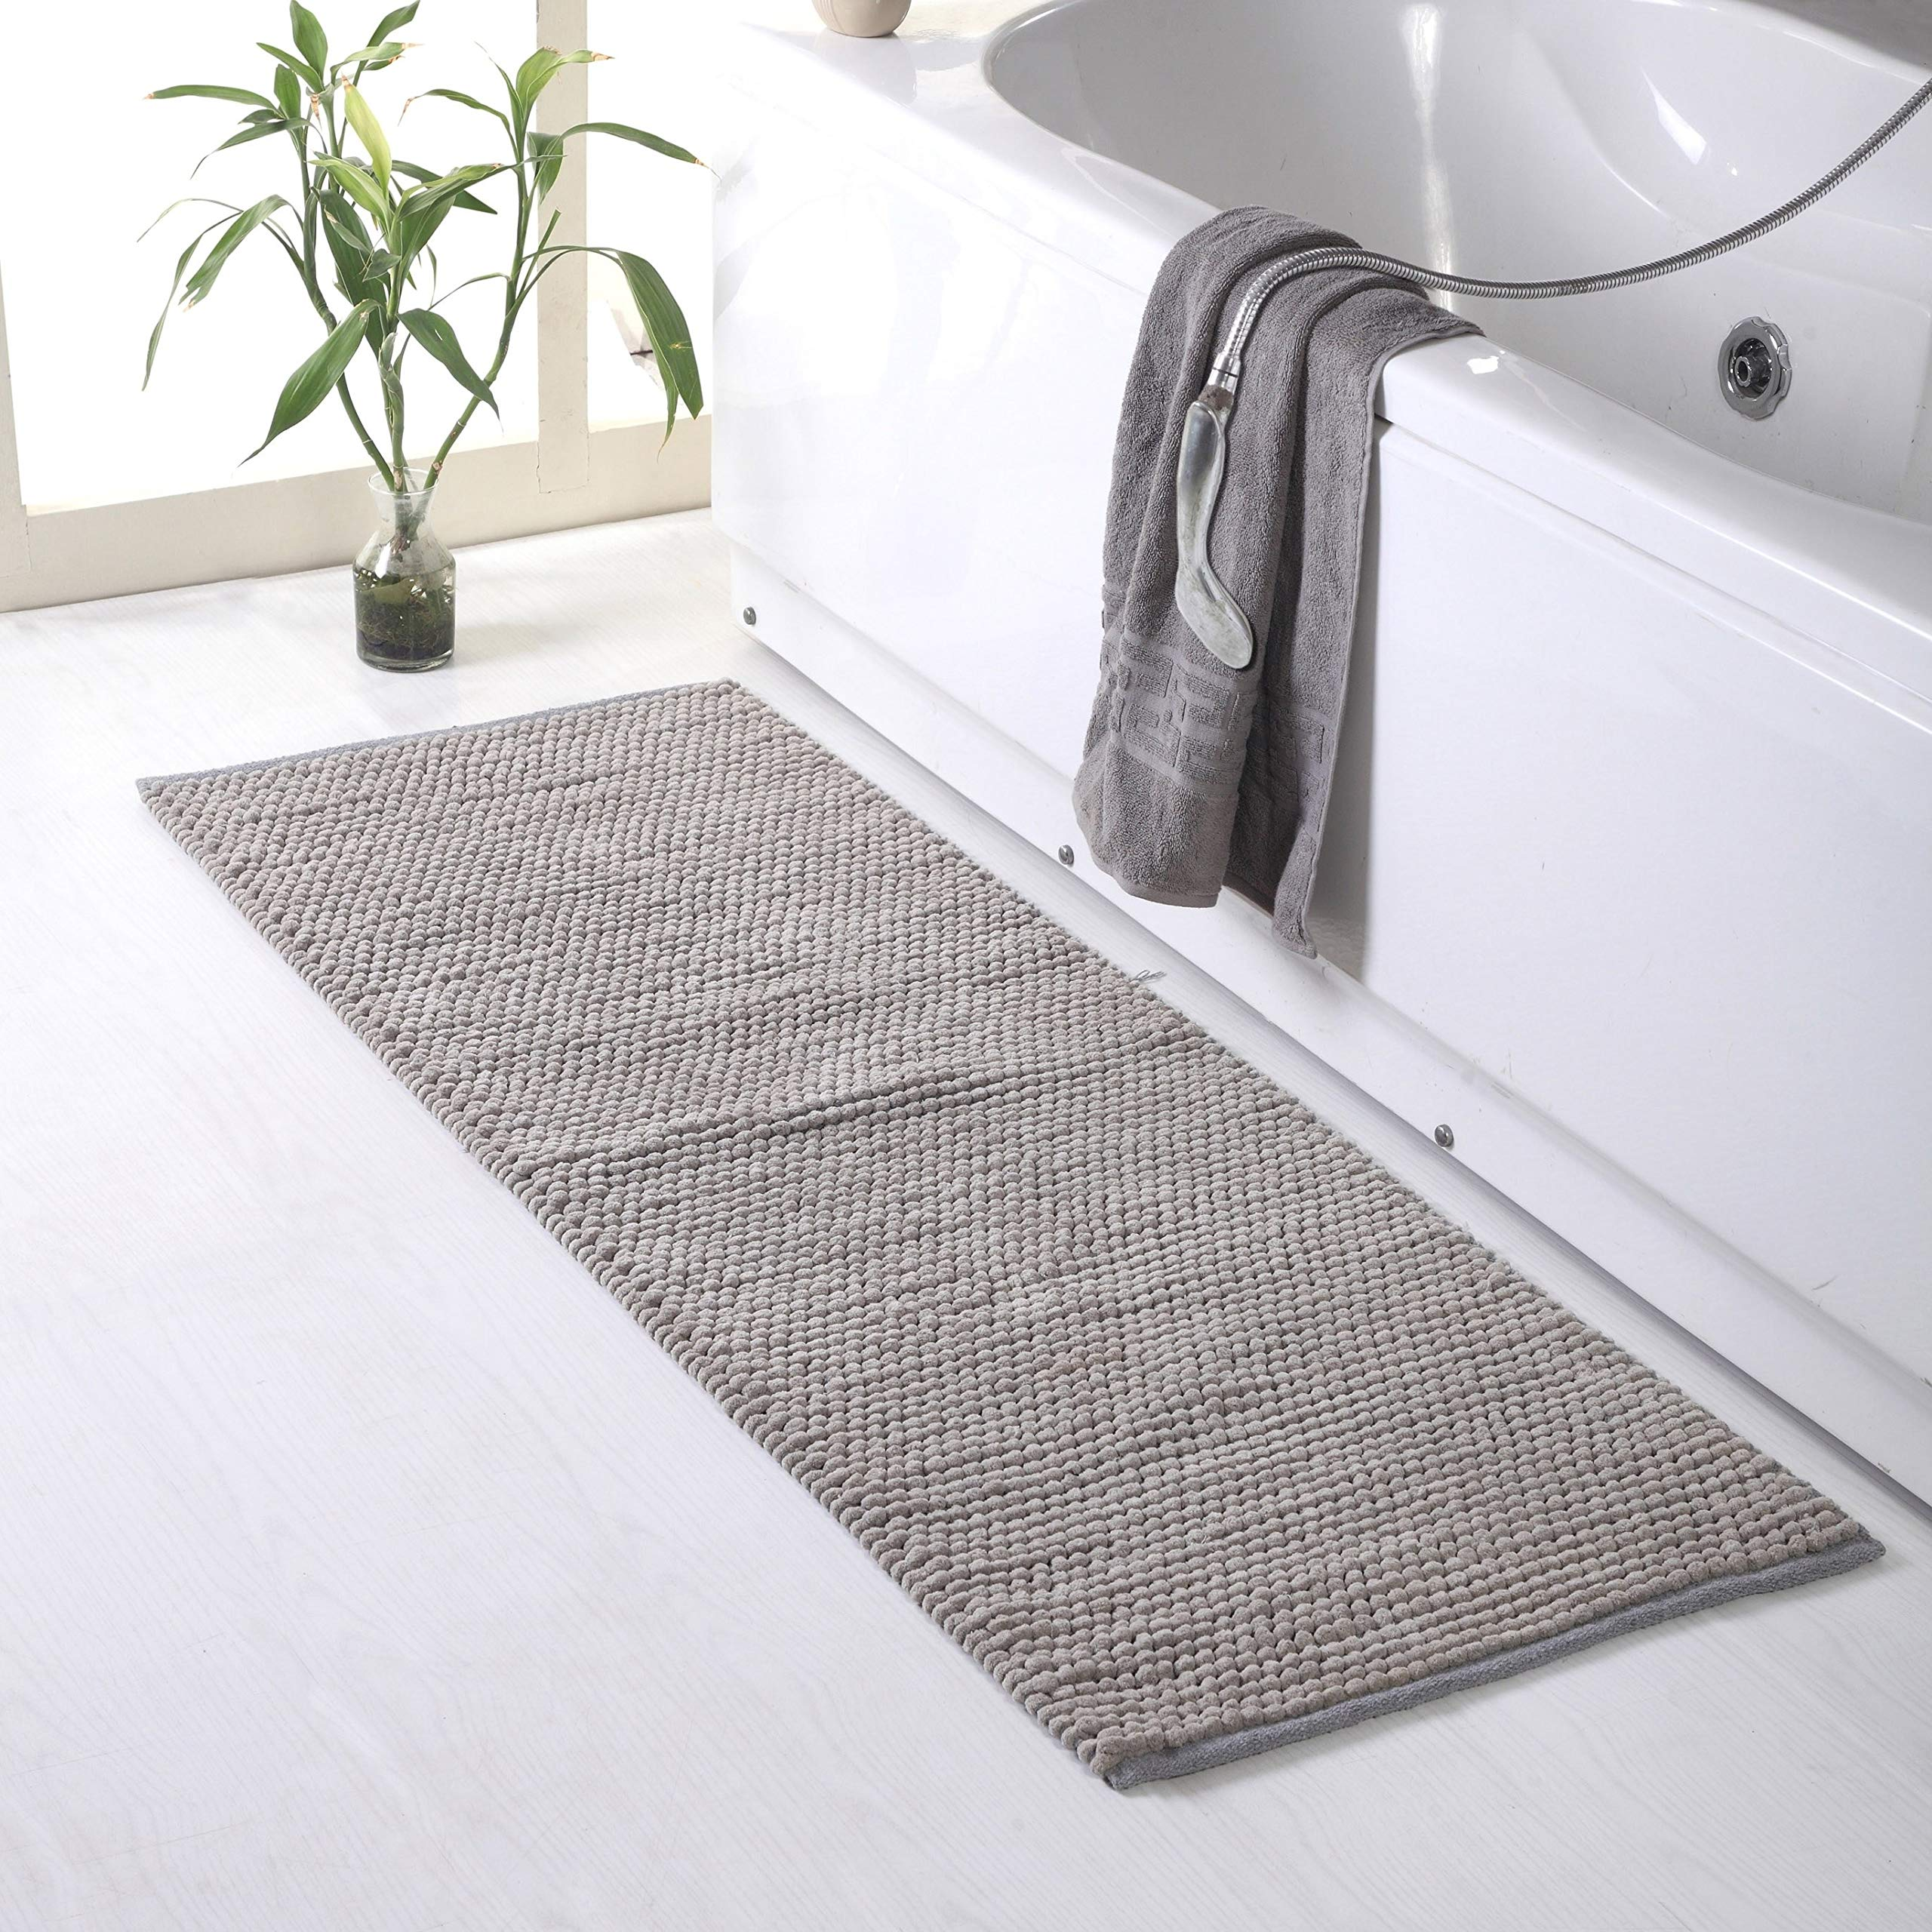 Solid Silver Grey Chenille Bath Rug XL, Oversized Bath Mat Extra Long Runner, Textured Loop Design Carpet Soft Cozy Absorbent Master Guest Bathroom Accent Decor Light, Rectangle 22'' x 60'' Cotton